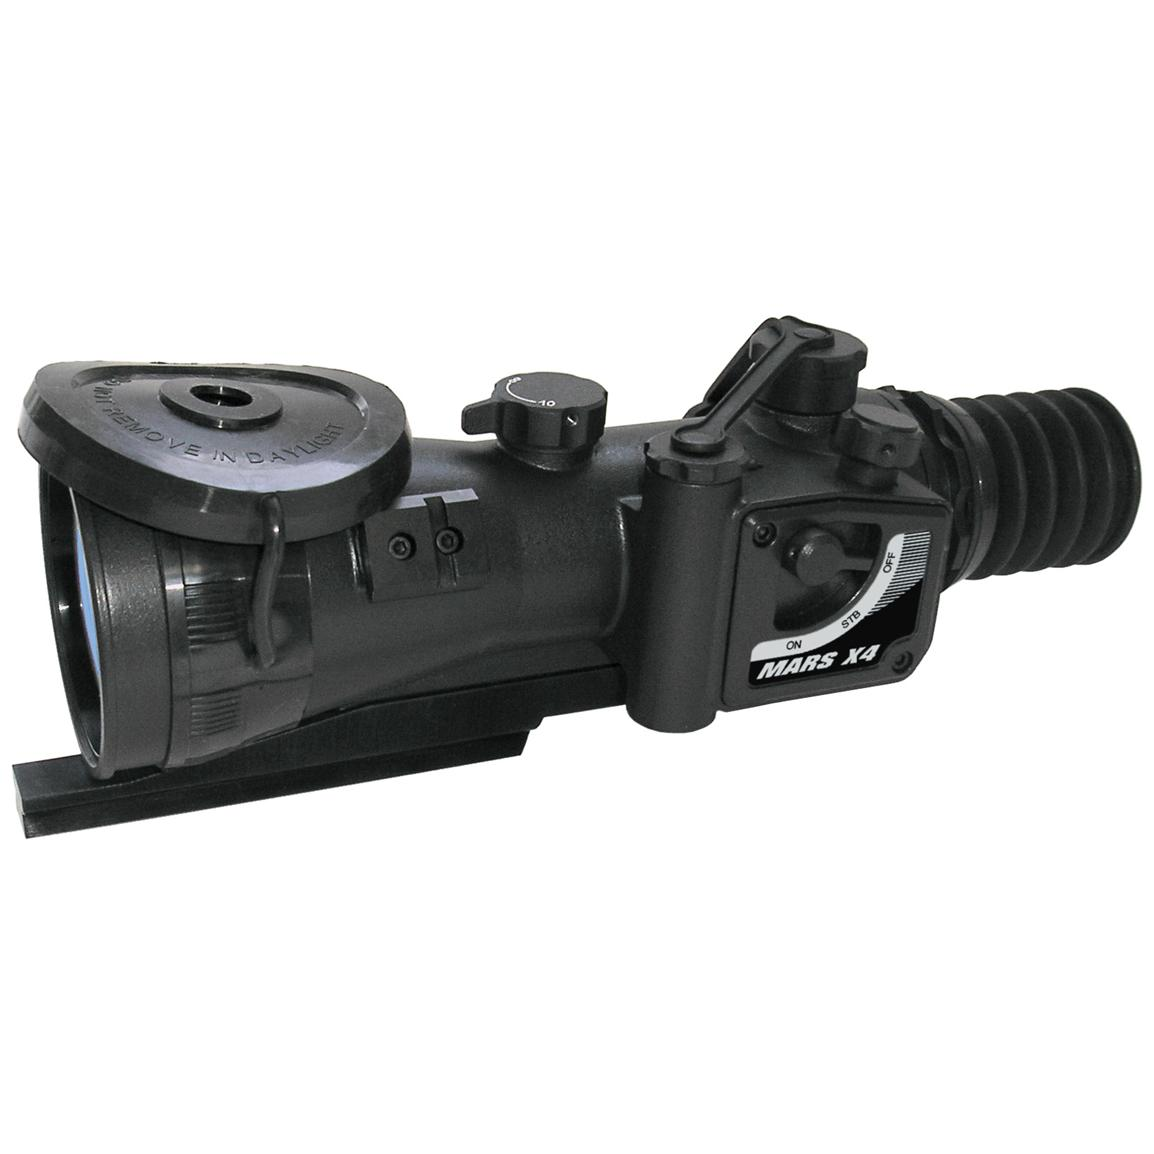 ATN Mars 4X-3A Night Vision Weapon Scope